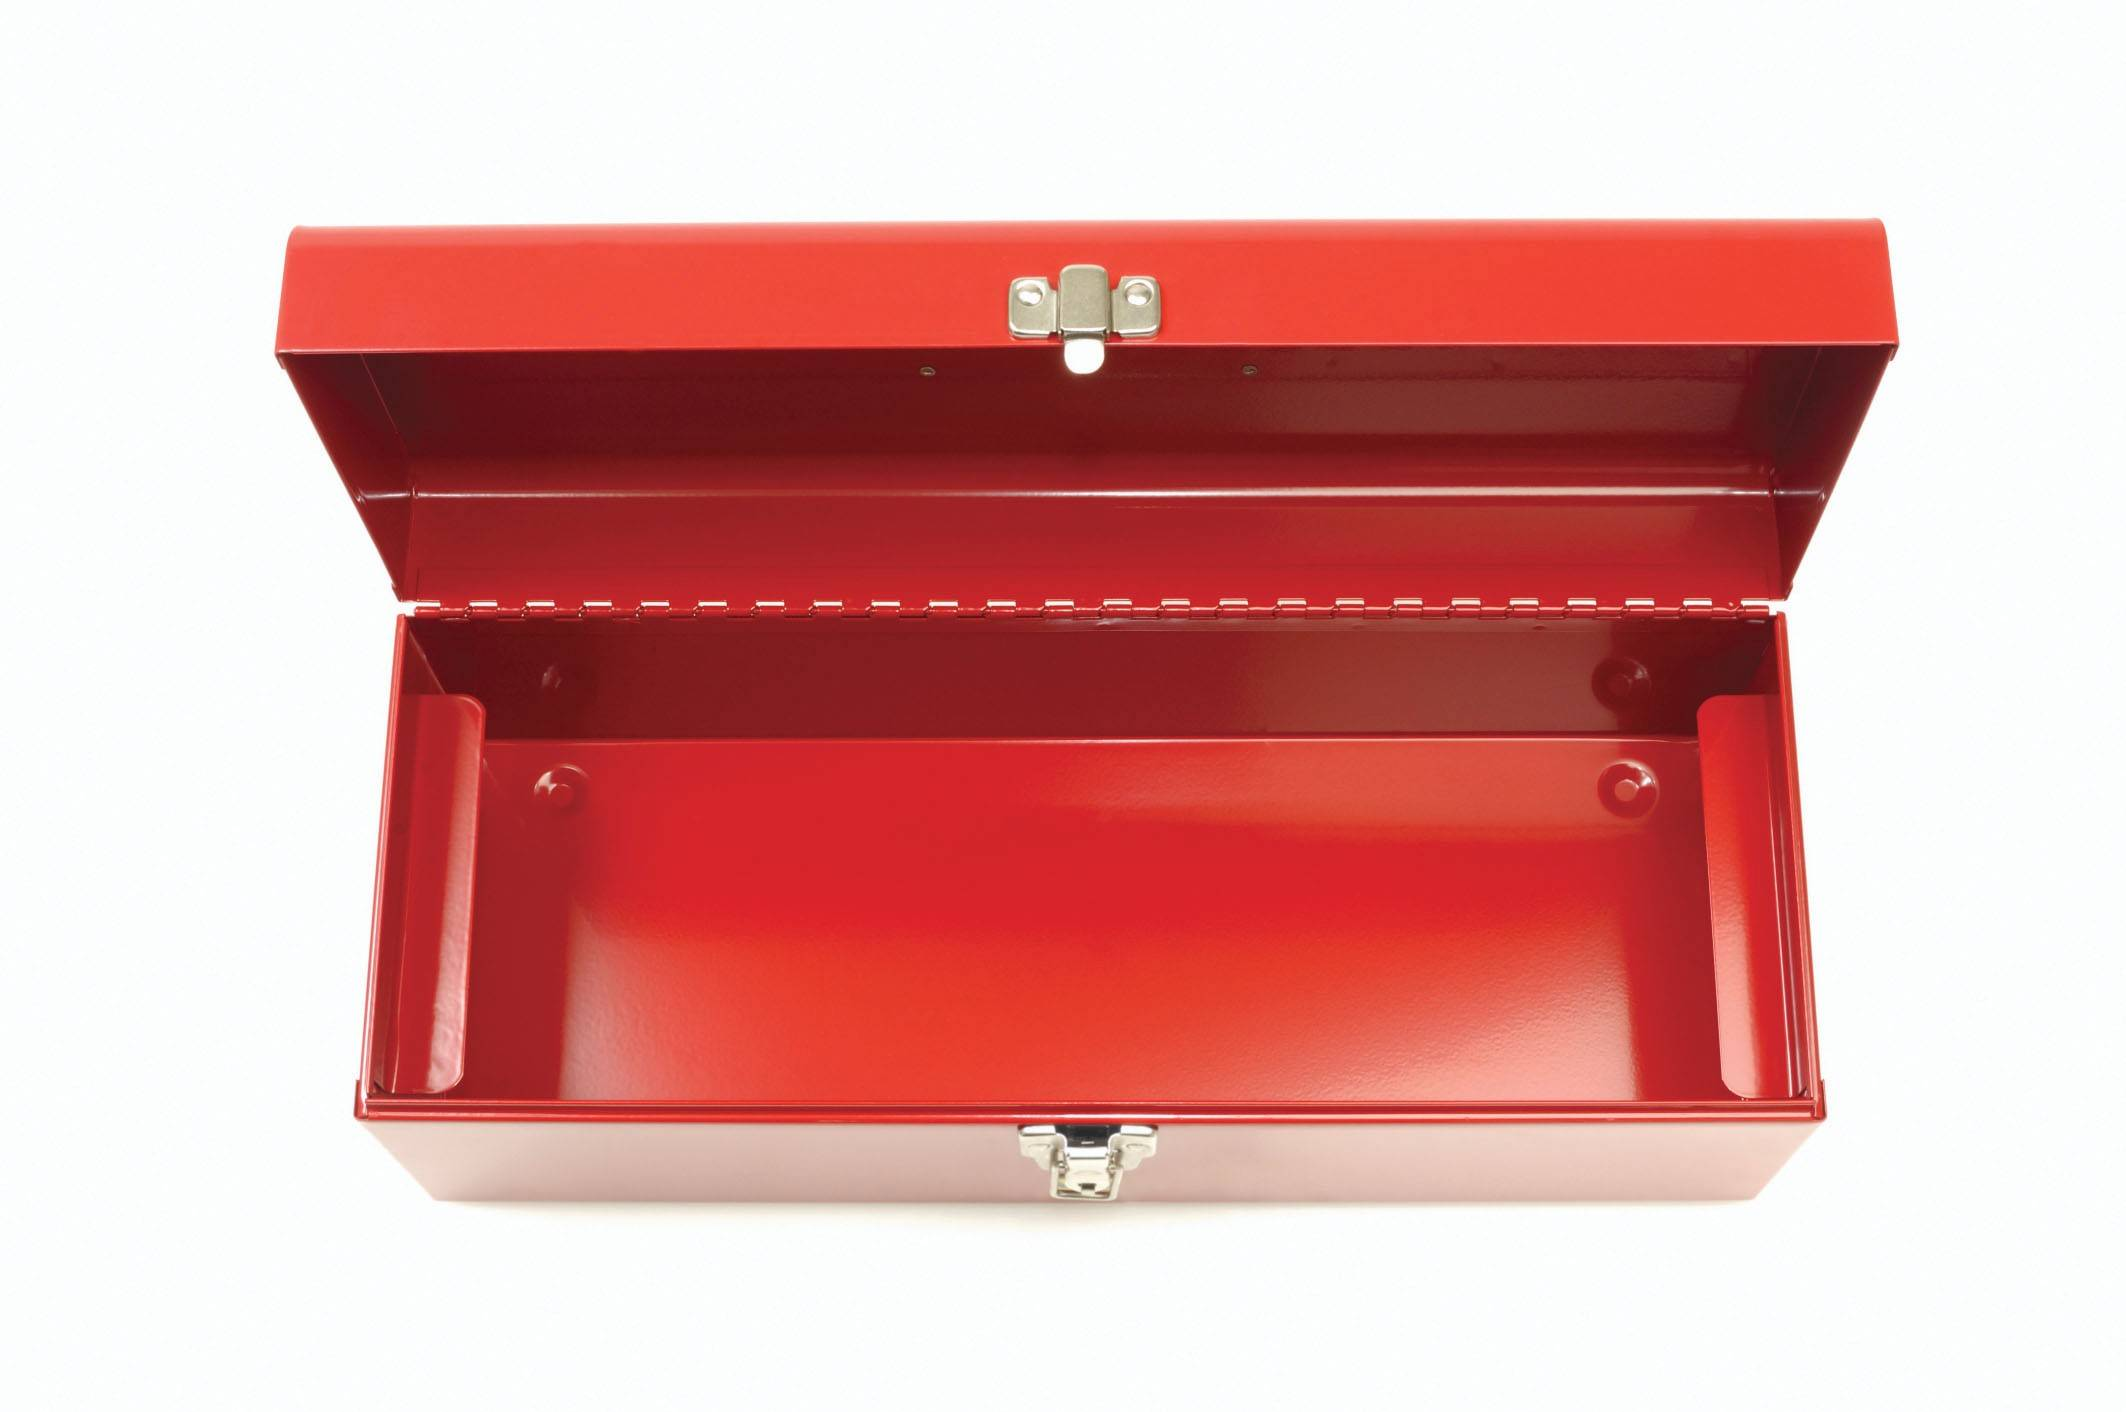 First things first — get a sturdy toolbox.